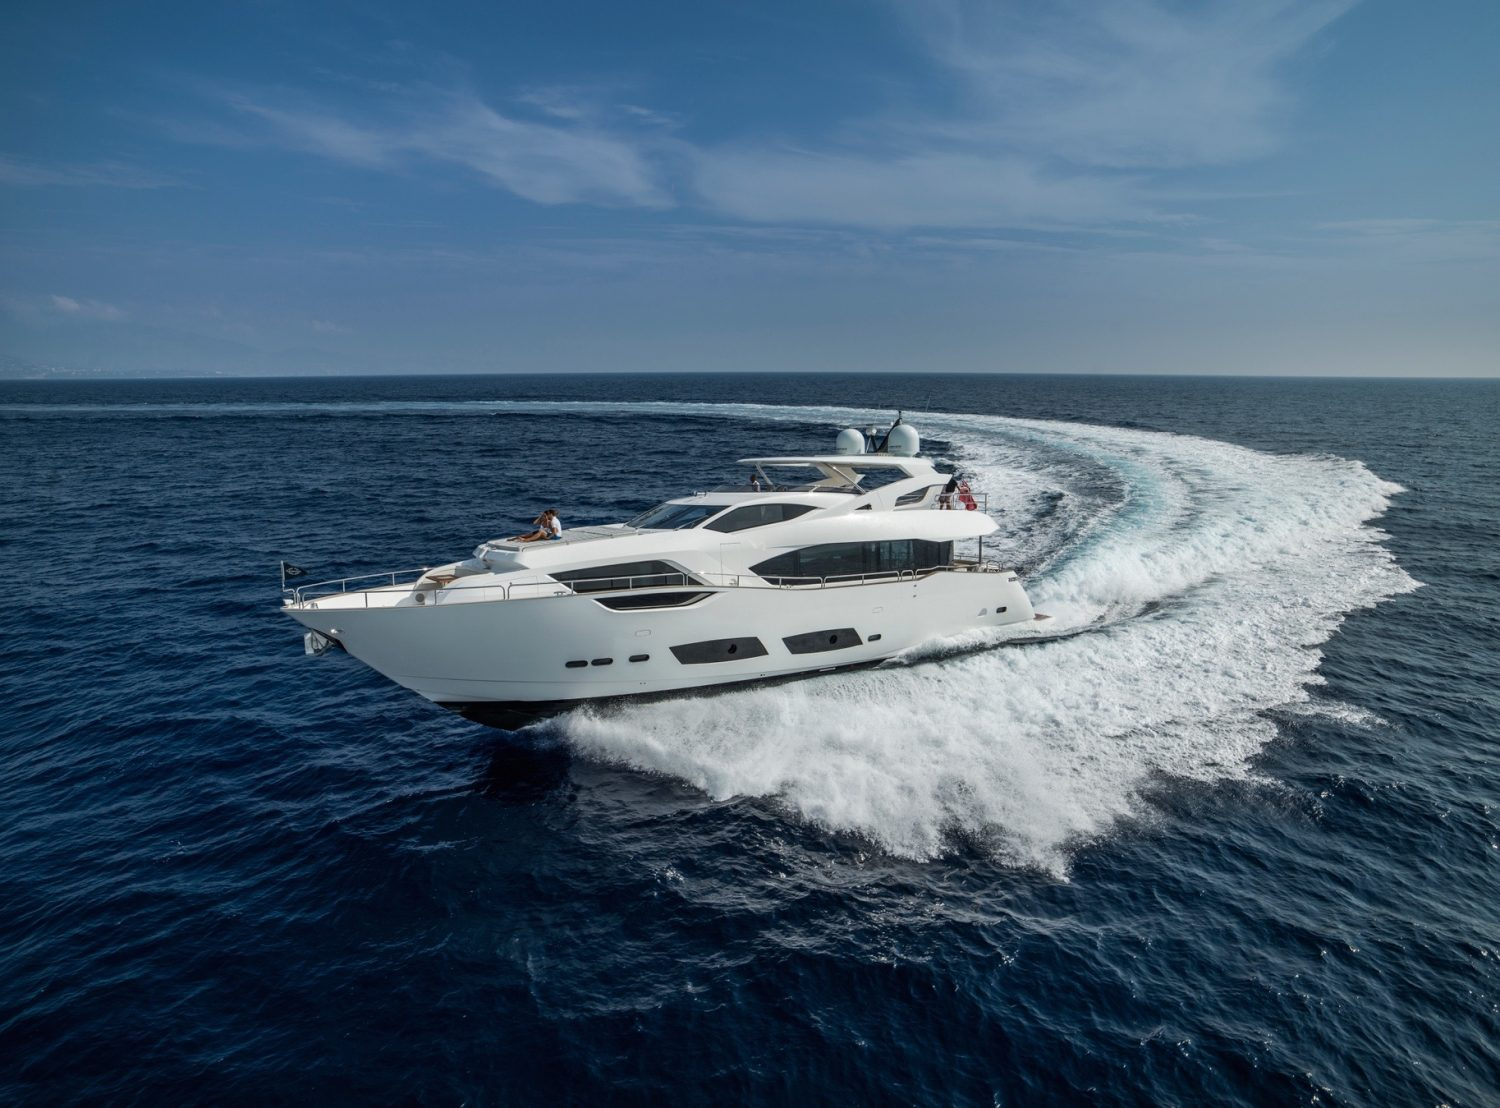 palm beach international boat show 2020 Discover Here The Yachts That Will Debut At Palm Beach International Boat Show 2020 palm beach international boat 2020 event guide scaled